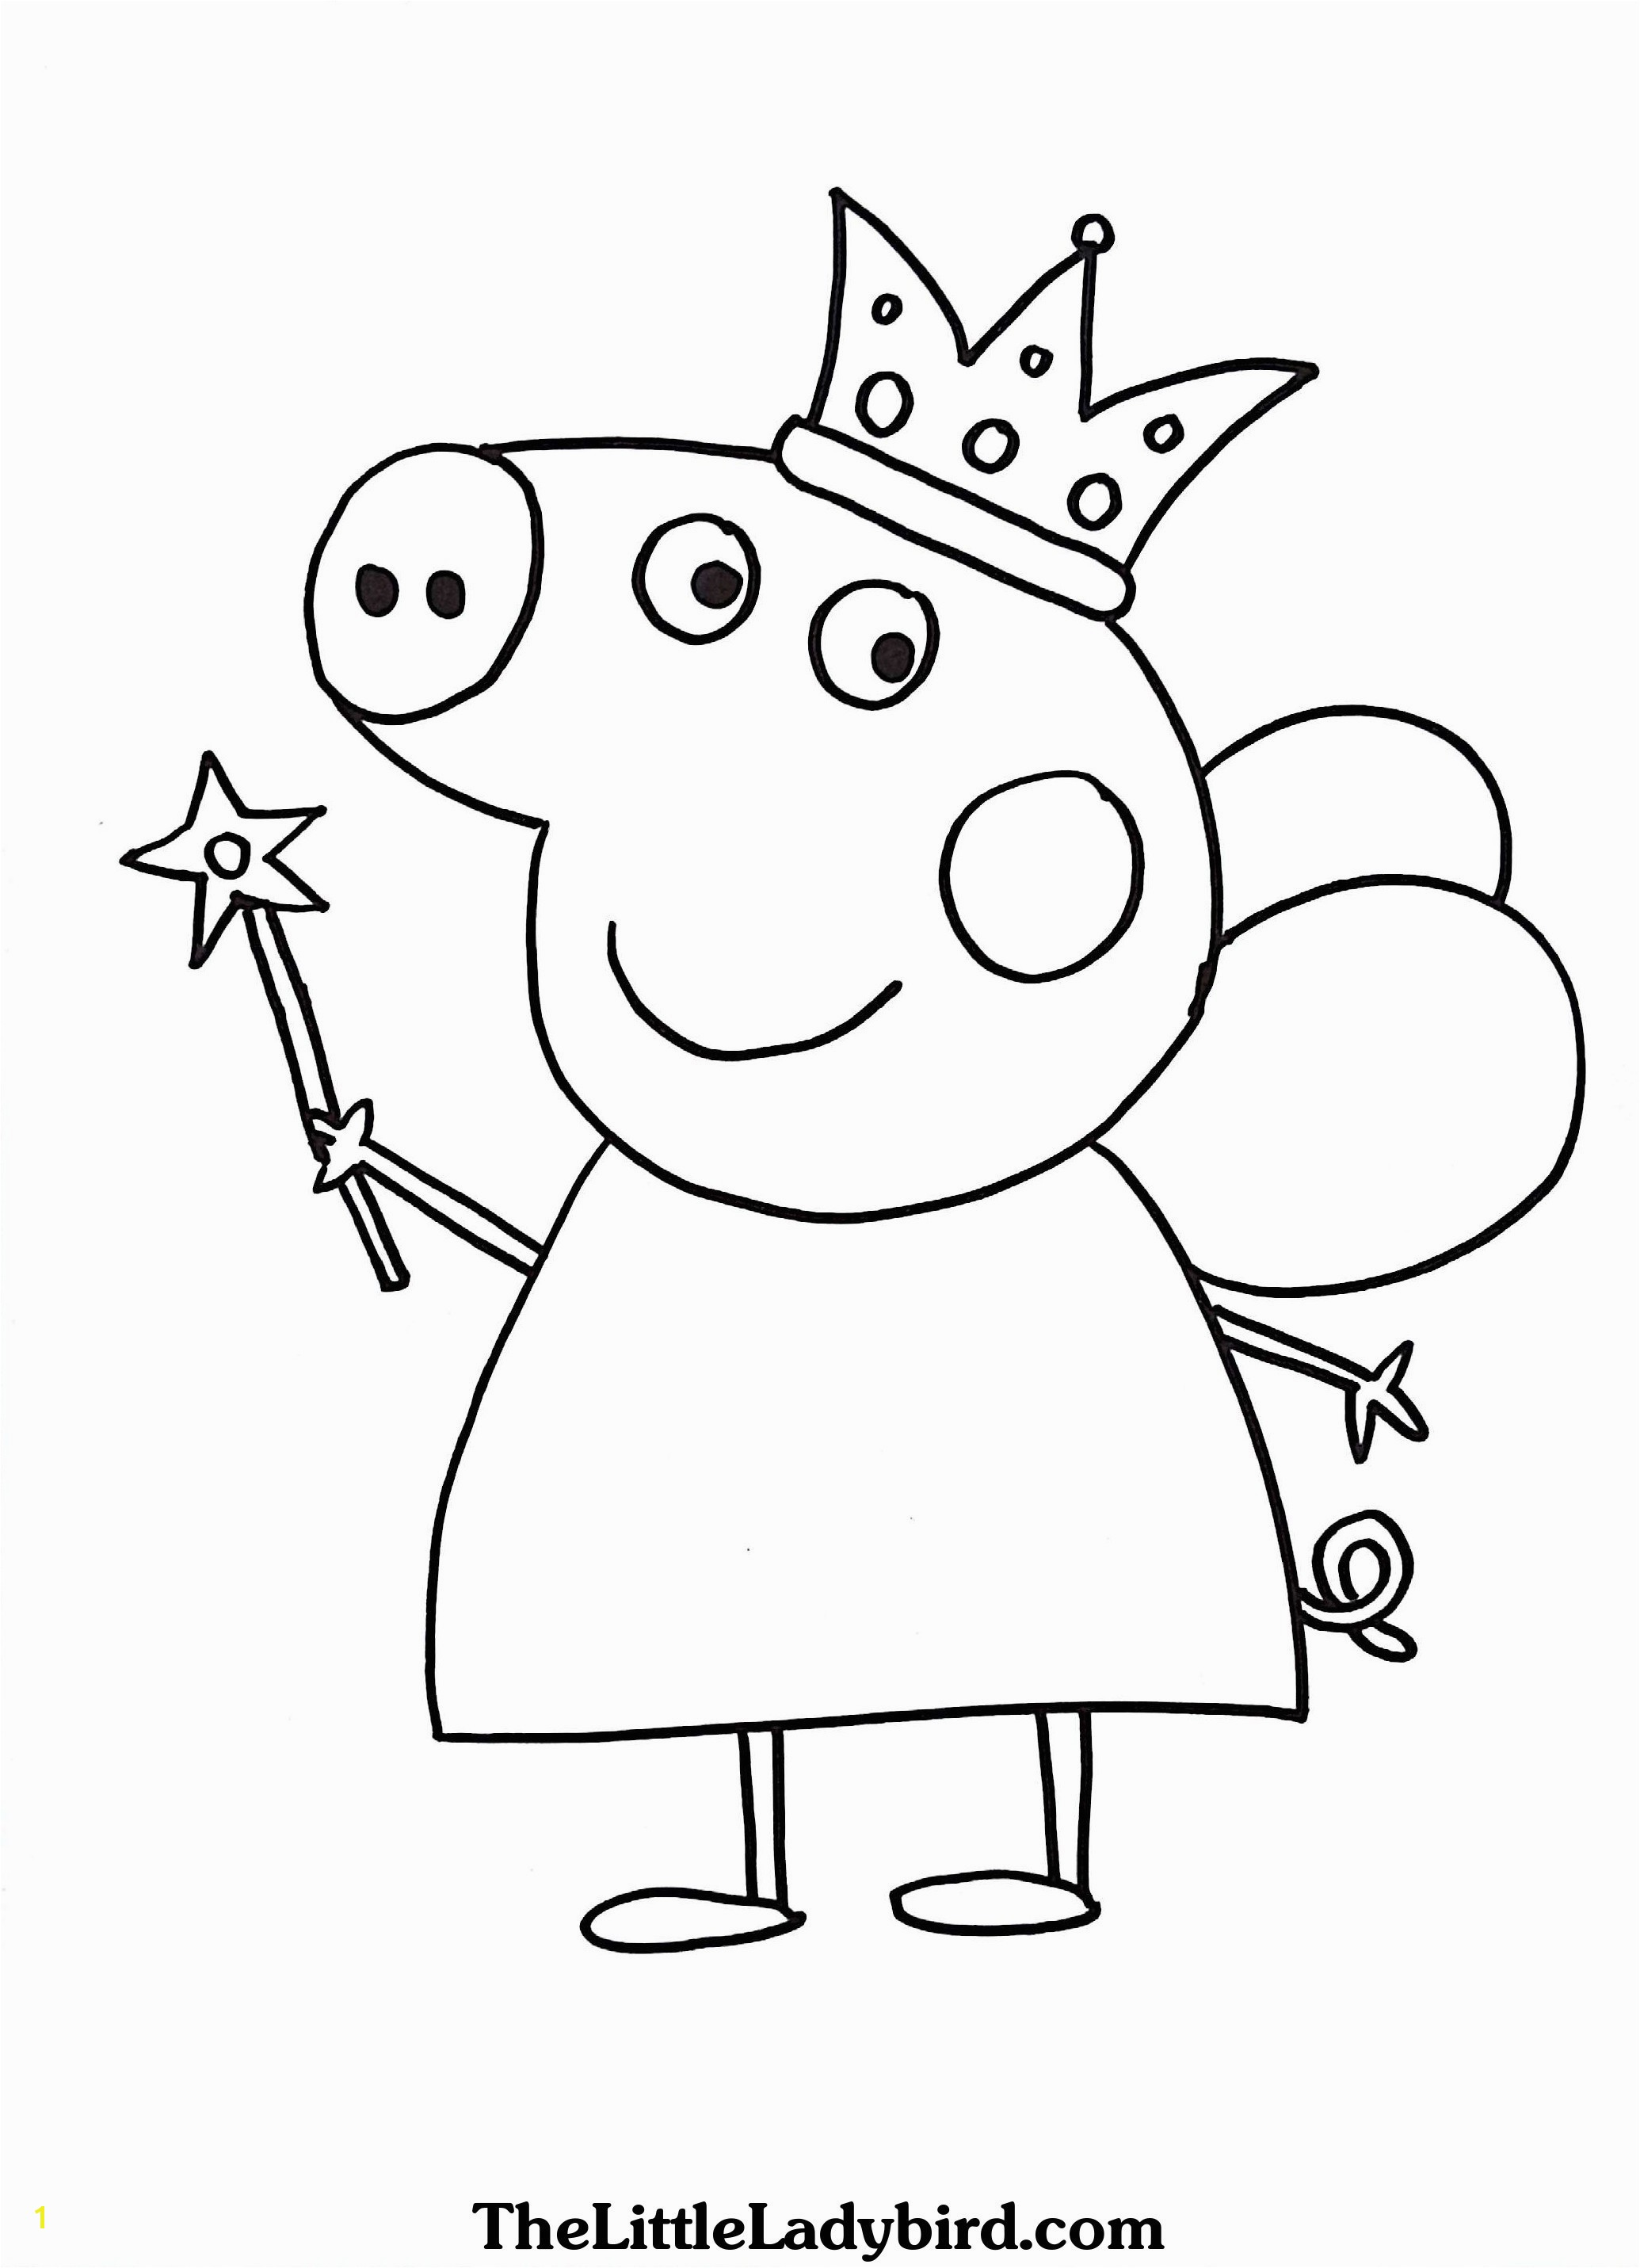 Peppa Pig Coloring Pages Peppa Pig Coloring Pages Line Heathermarxgallery